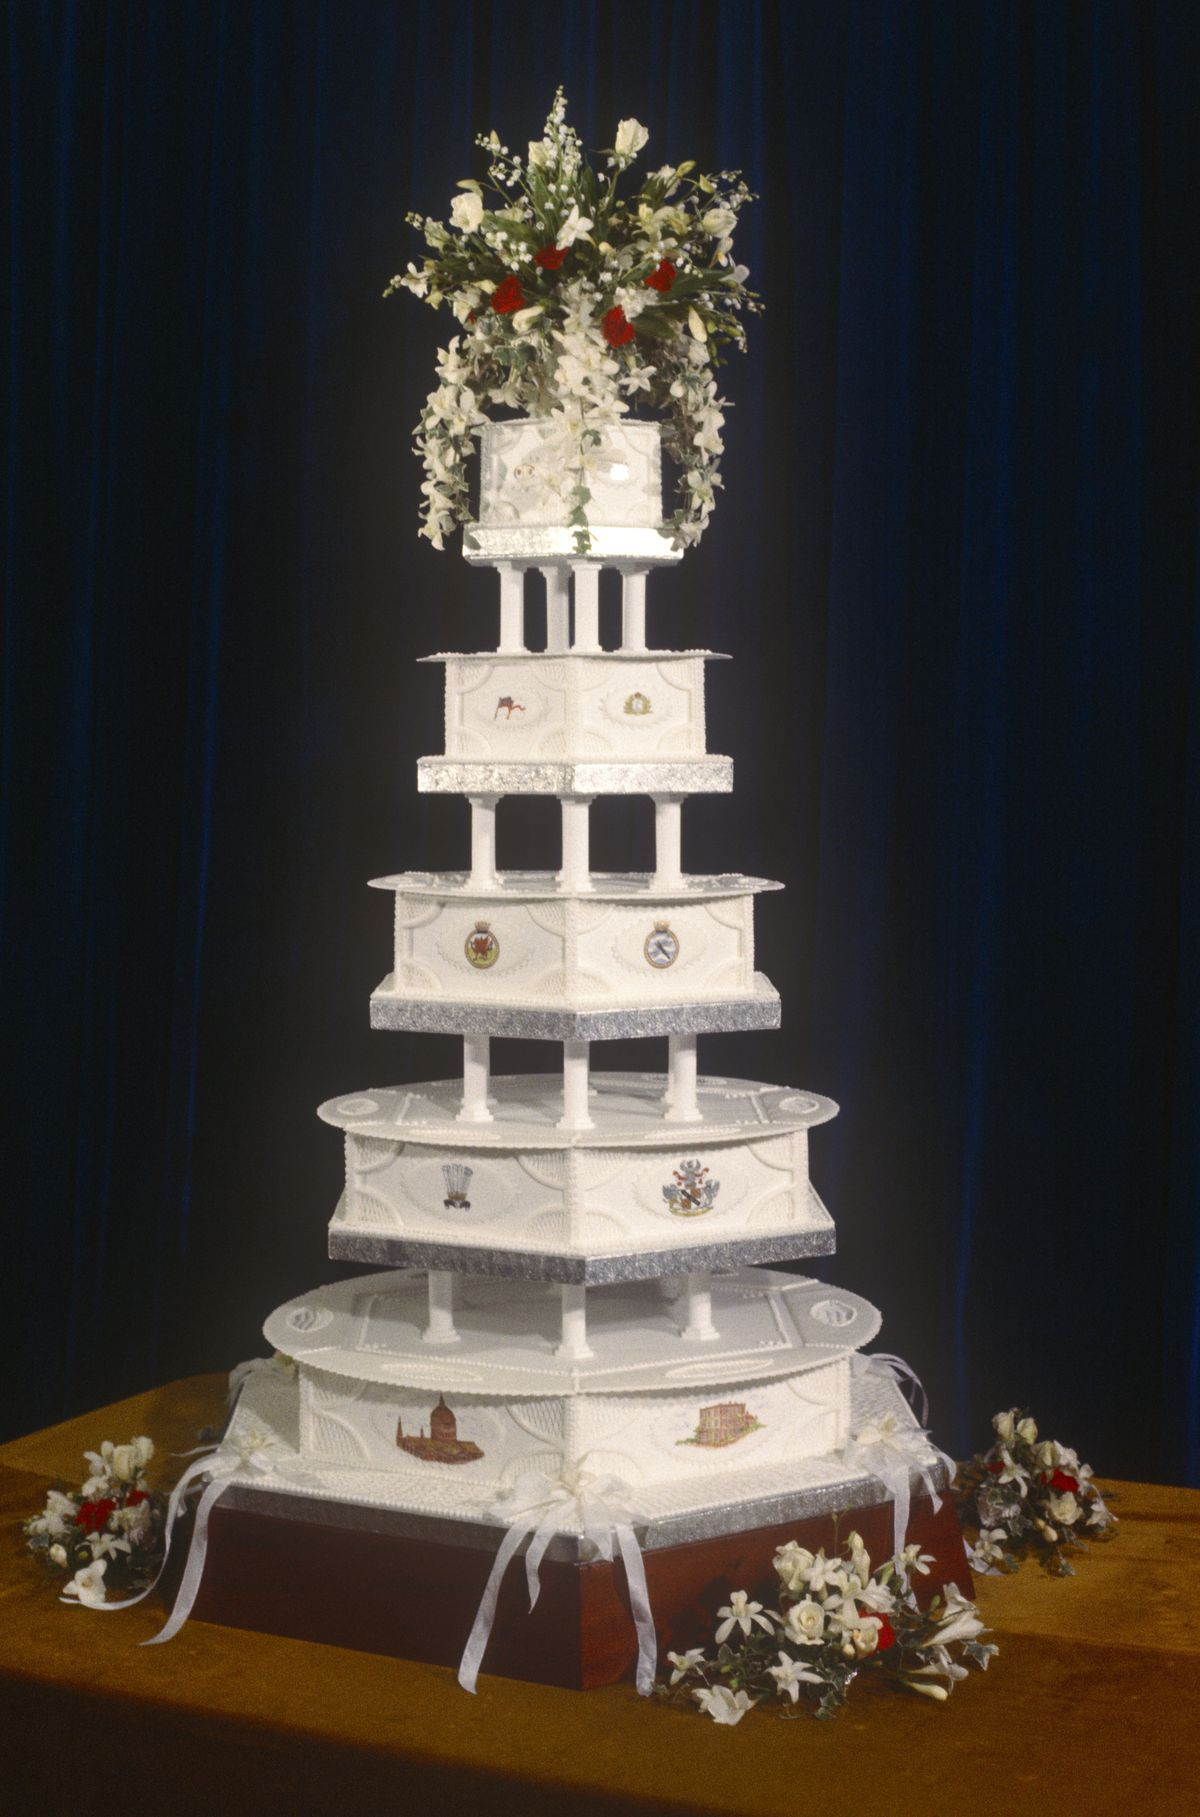 images of royal wedding cakes royal wedding cakes the years eater 16352